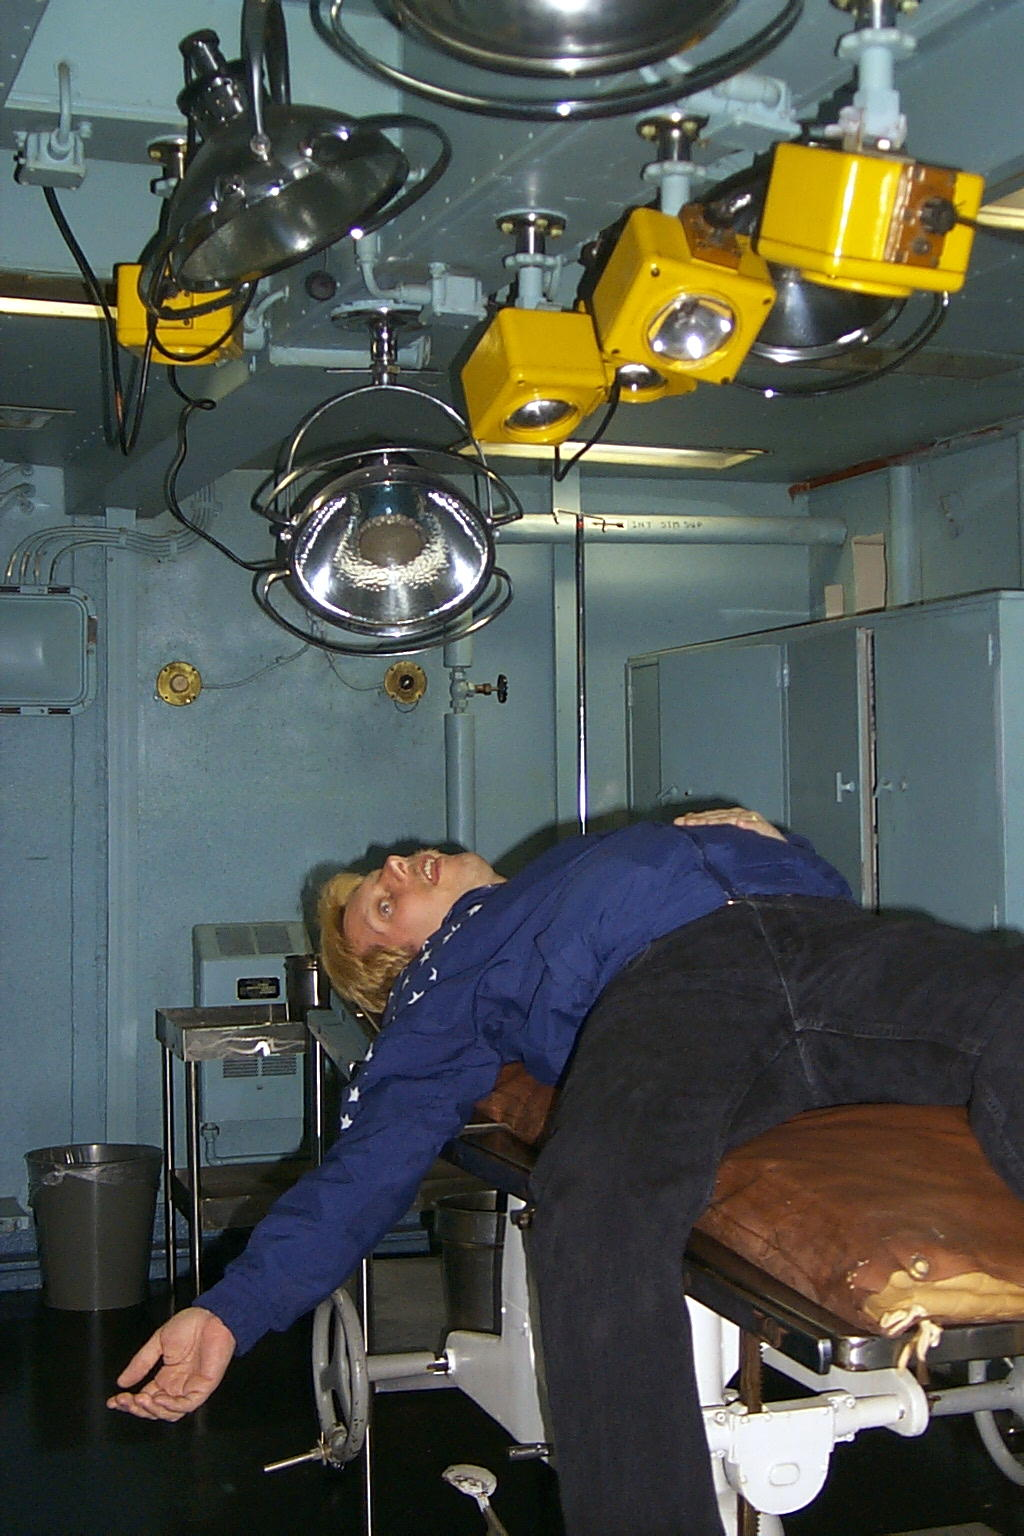 Dennis is passed out on the operating table in Sick Bay from running up and down the ladders aboard the ship.